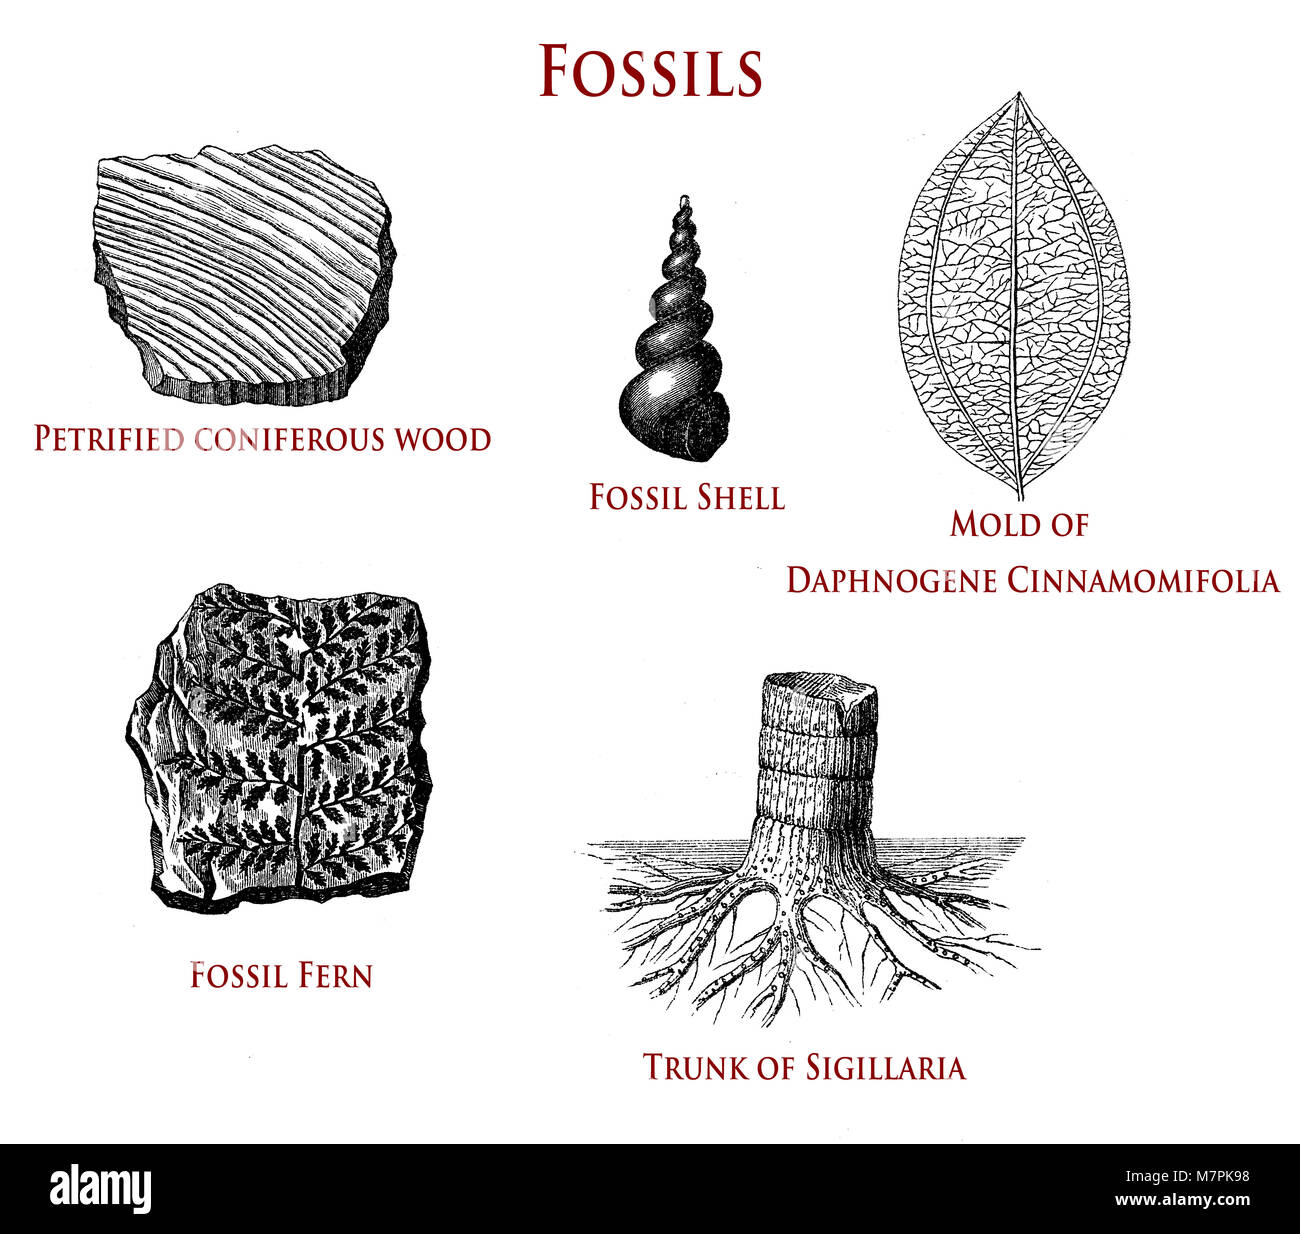 vintage illustration of fossils: petrified coniferous wood, shell, fern,sigillaria and daphnogene cinnamomifolia - Stock Image